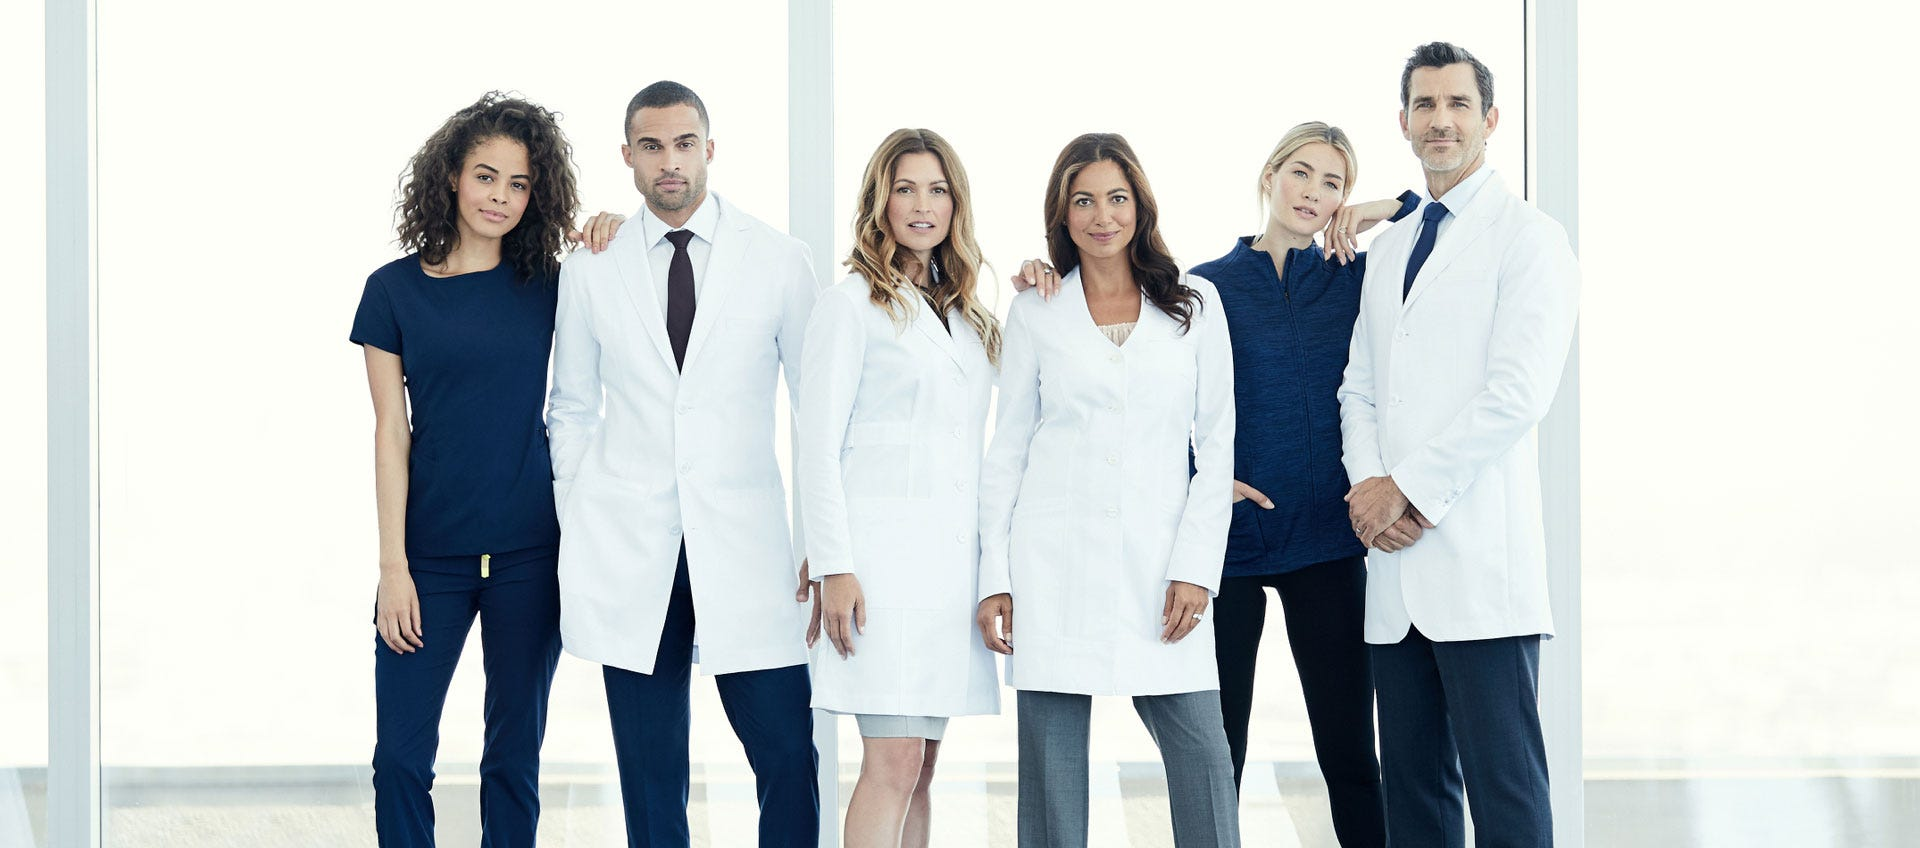 men and women standing together in scrubs and labcoats